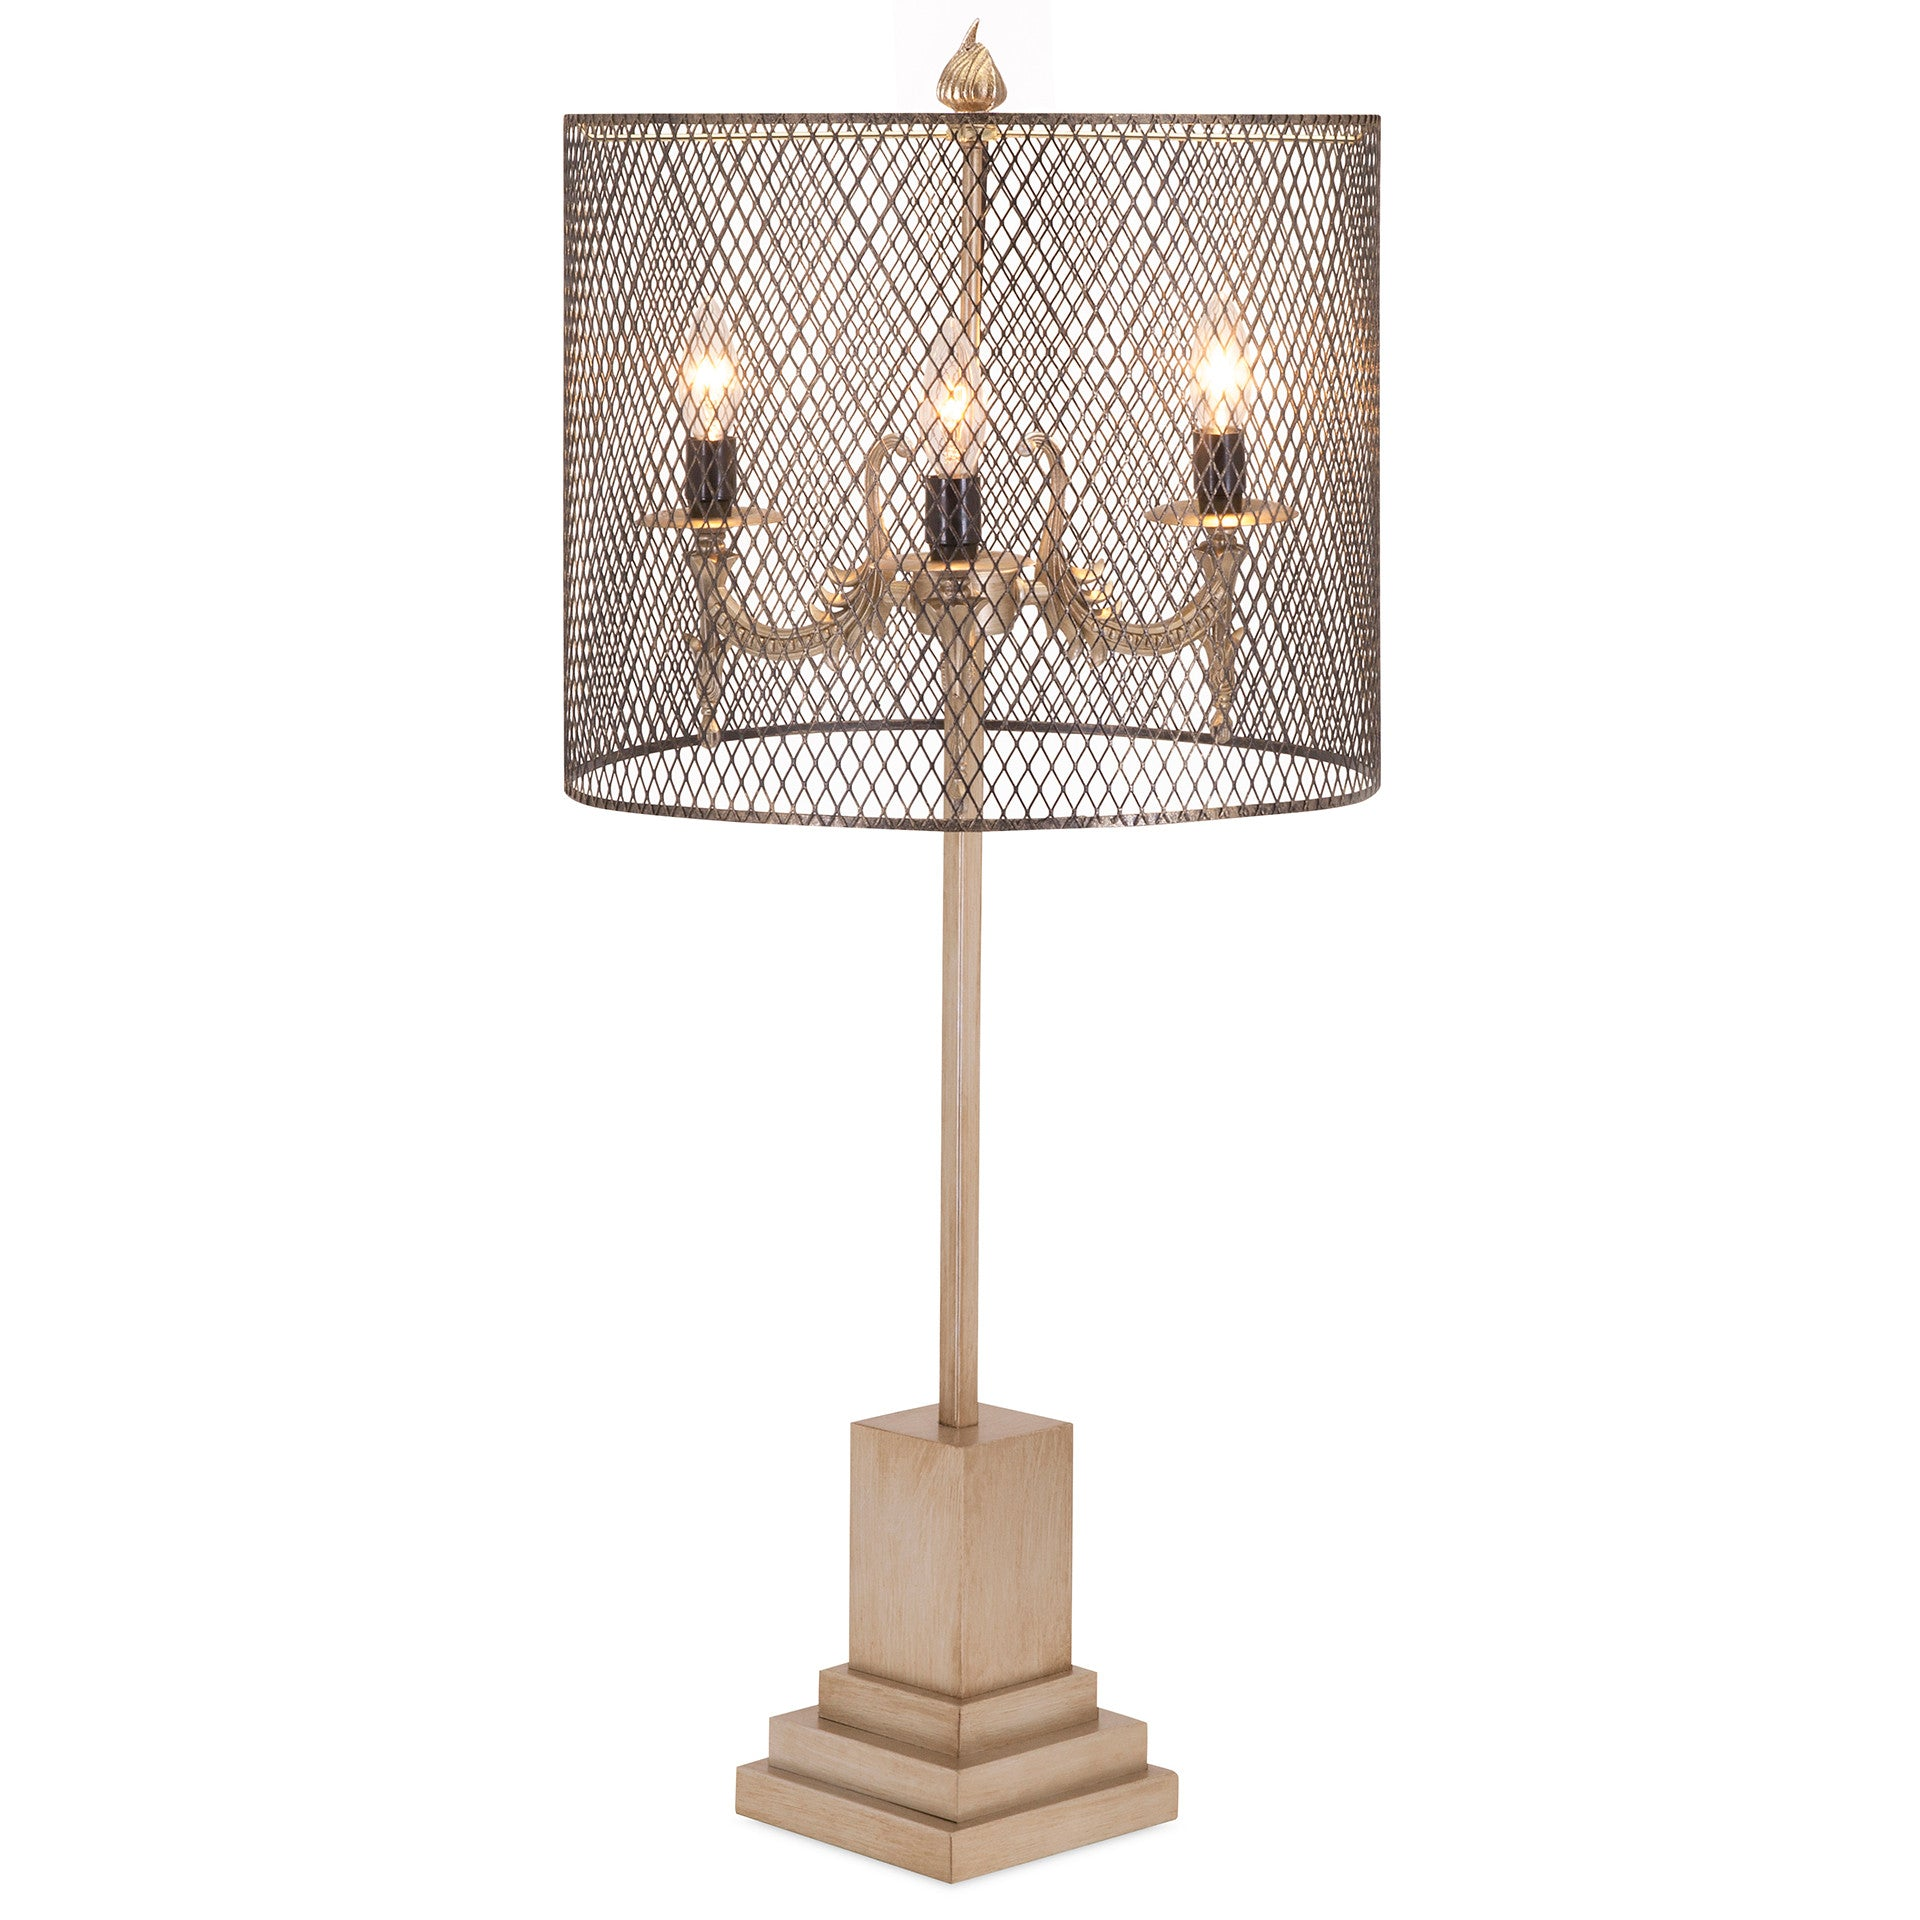 industrial chic lighting. industrial chic modern wire mesh table lamp lighting g